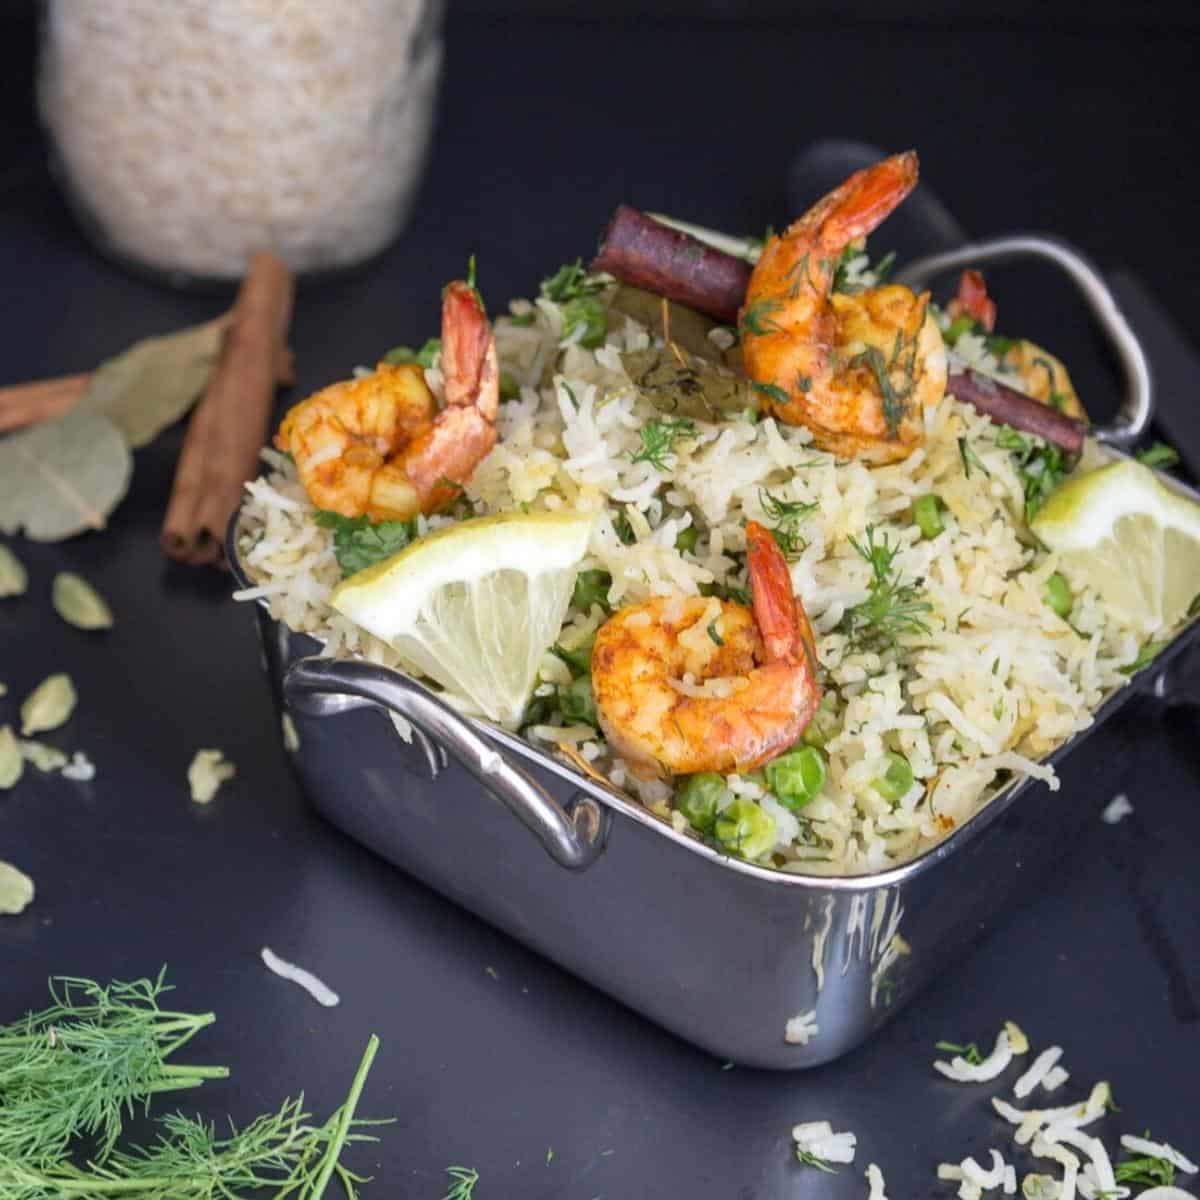 Shrimps over a bed of rice pilaf.